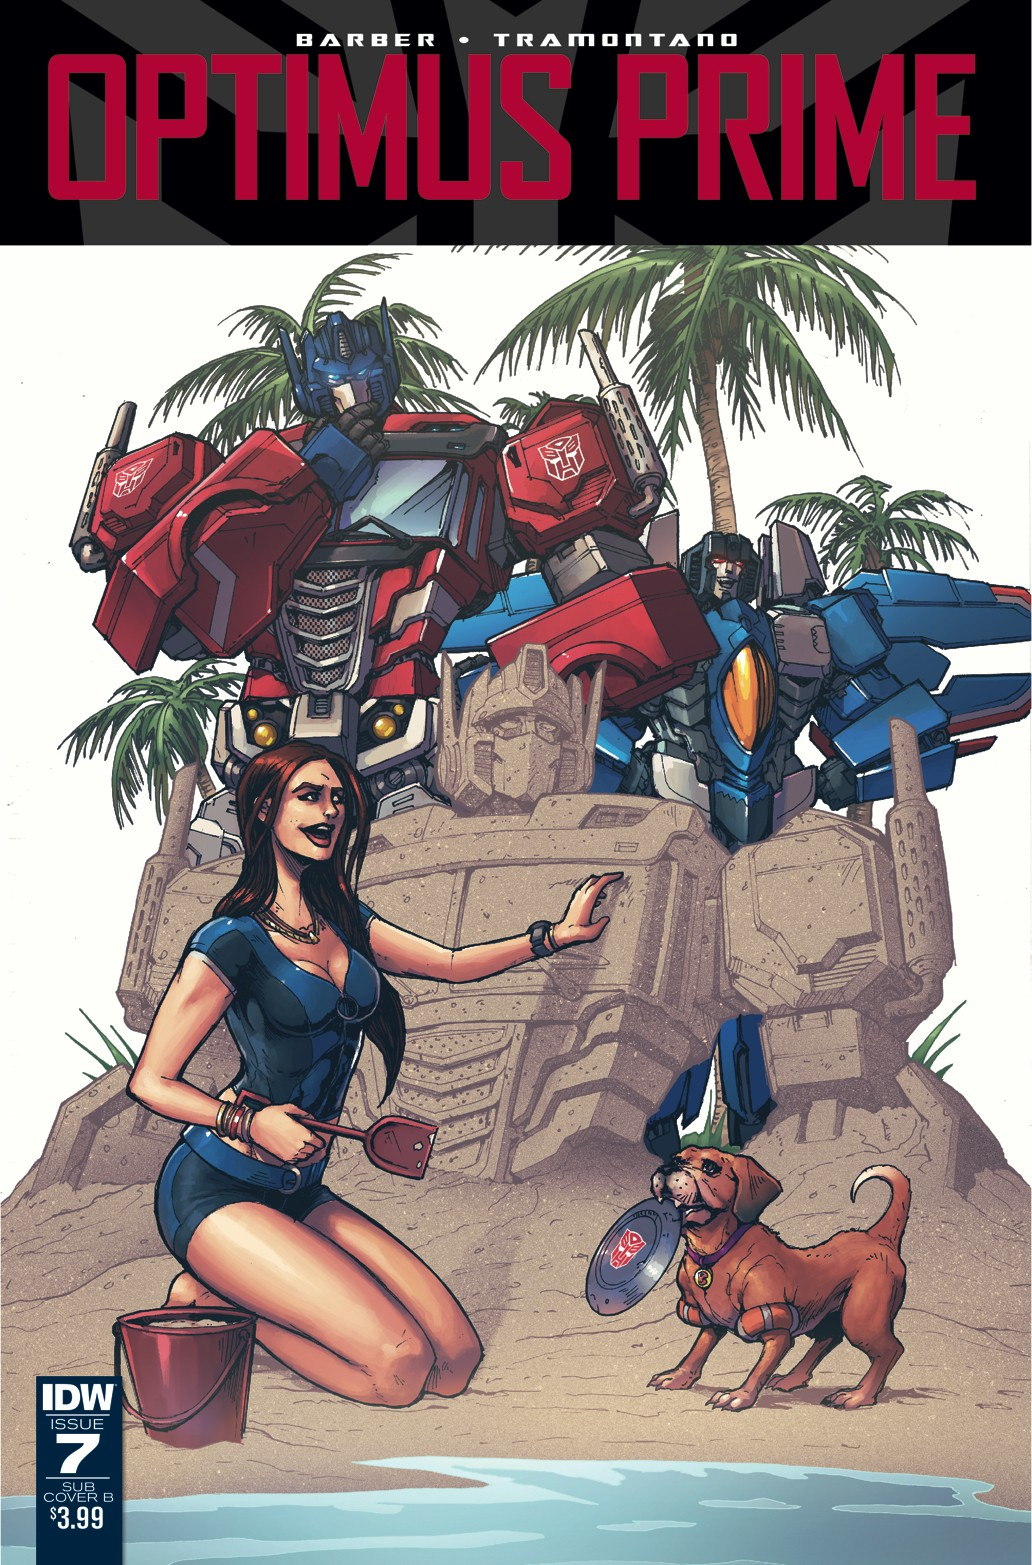 Transformers News: Variant Covers for IDW Optimus Prime #7 by Kei Zama/Josh Burcham, Andrew Griffith